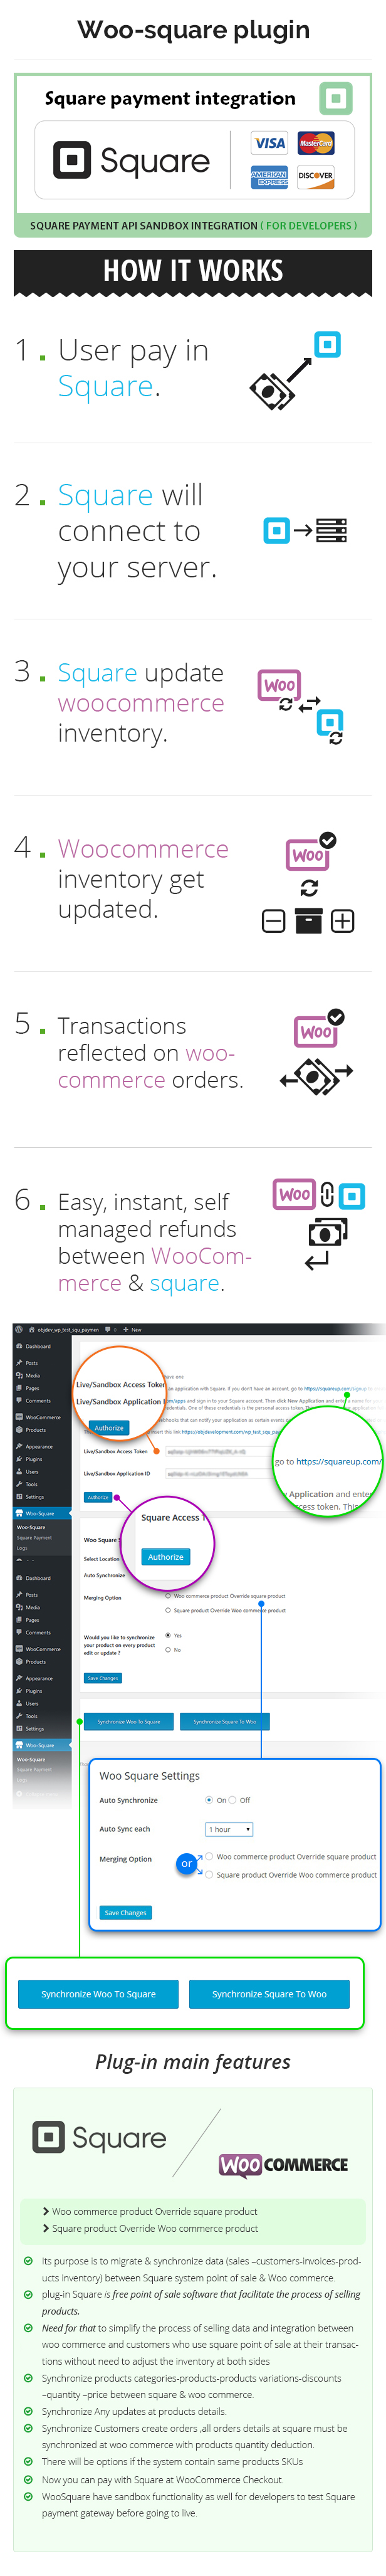 WooSquare Pro - WooCommerce Square Integration. 3